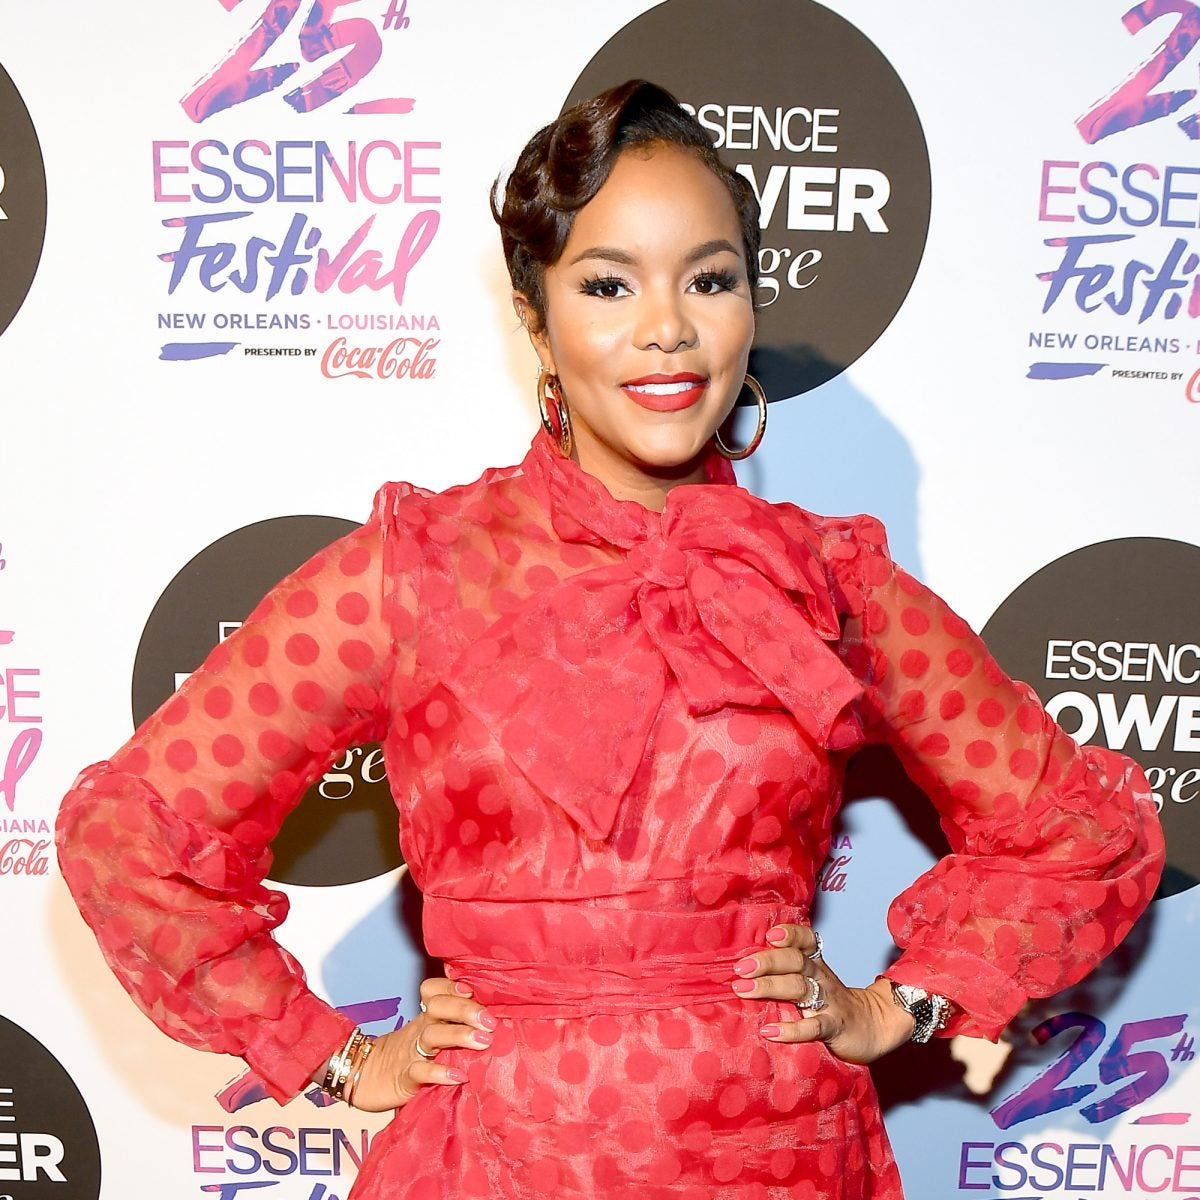 'Setting Clear Boundaries Is Very Important': LeToya Luckett Opens Up About Co-Parenting After Divorce